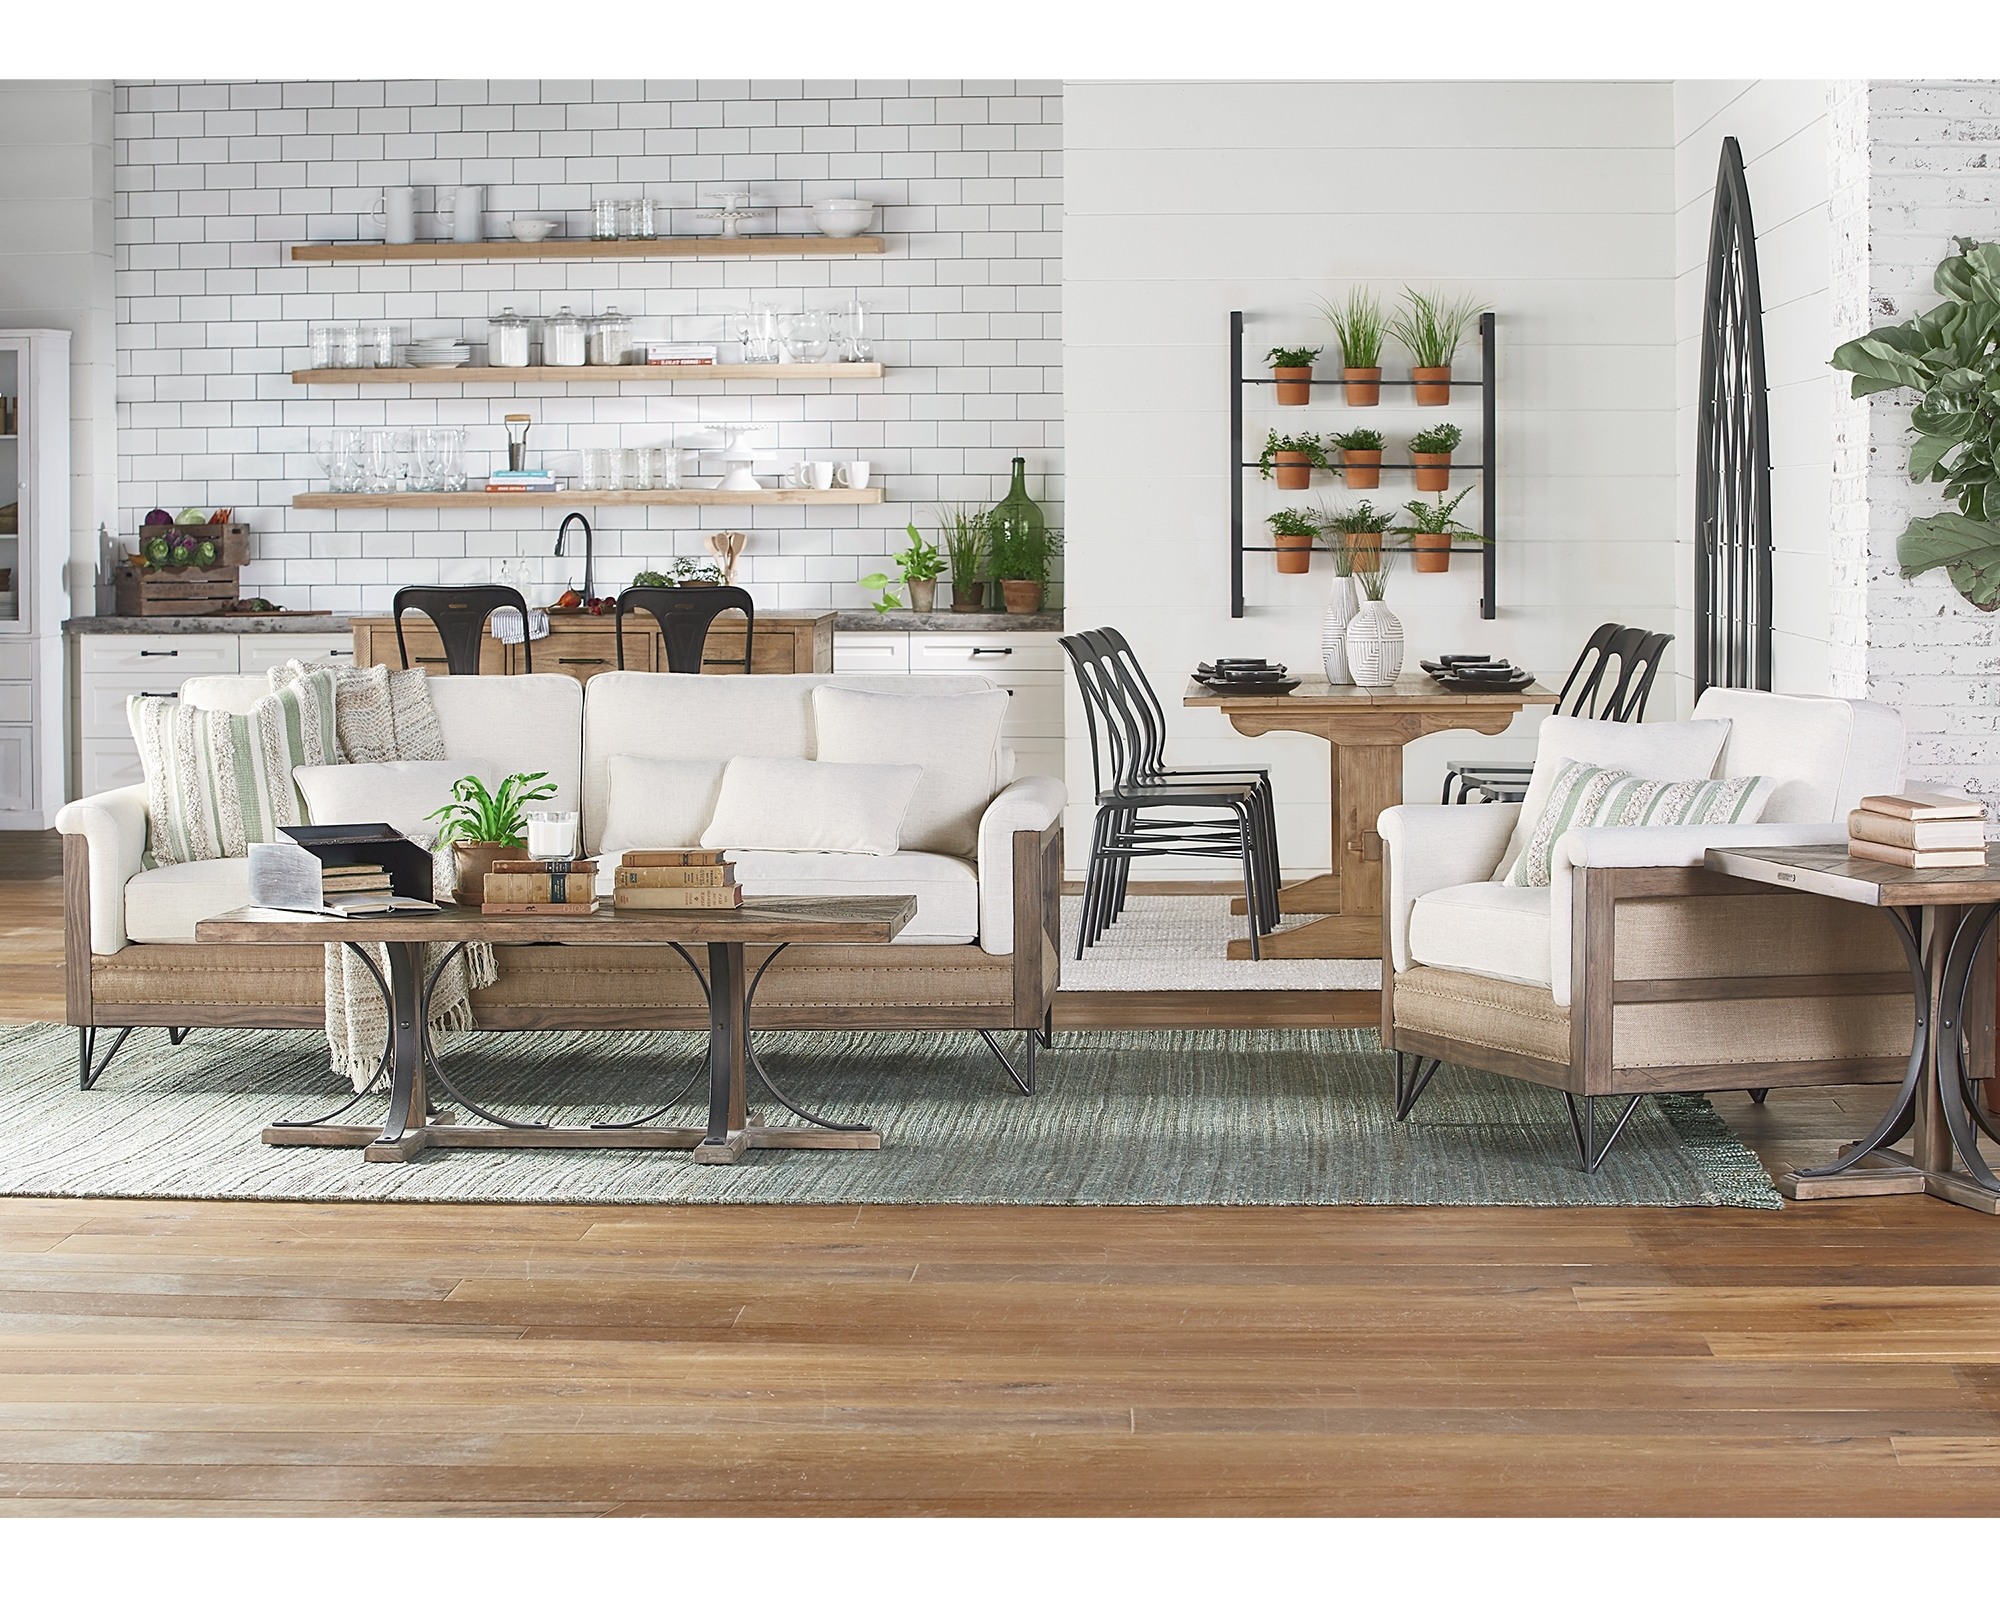 Magnolia Home Sawbuck Dining Tables Regarding Latest Iron Trestle End Table Magnolia Home Joanna Gaines (View 13 of 25)